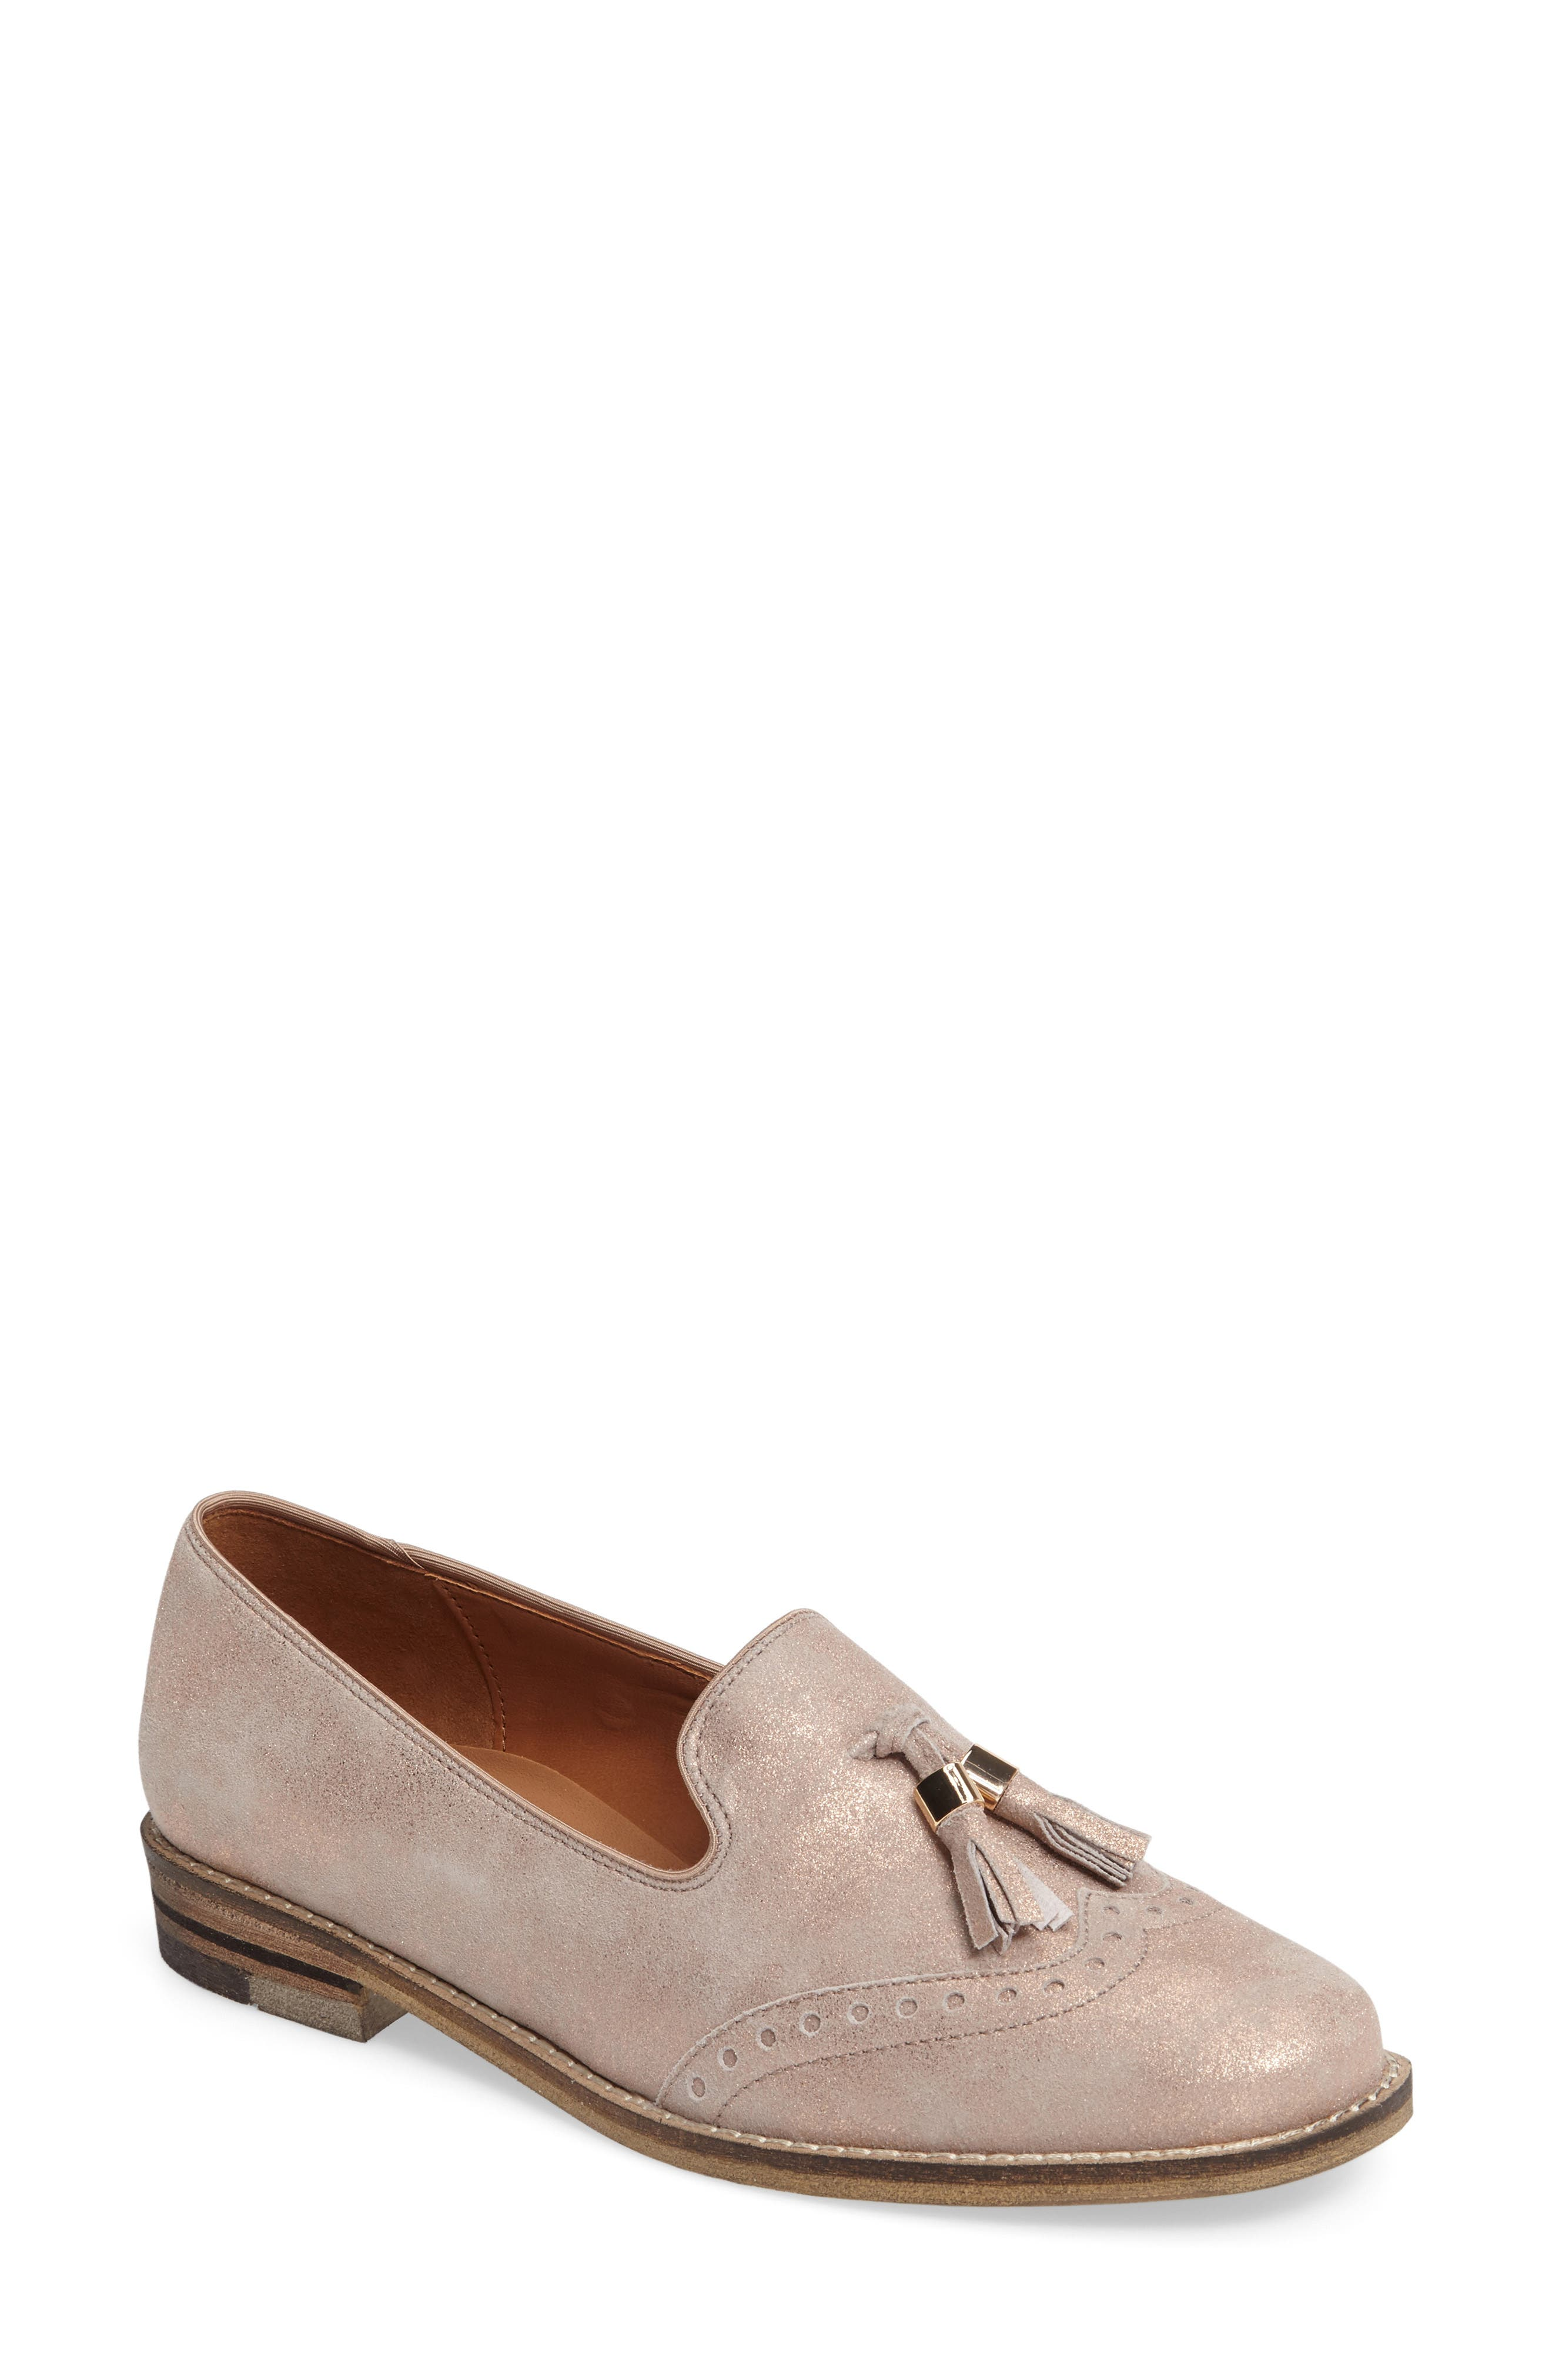 Kay Tassel Loafer,                             Main thumbnail 1, color,                             Rose Gold Leather